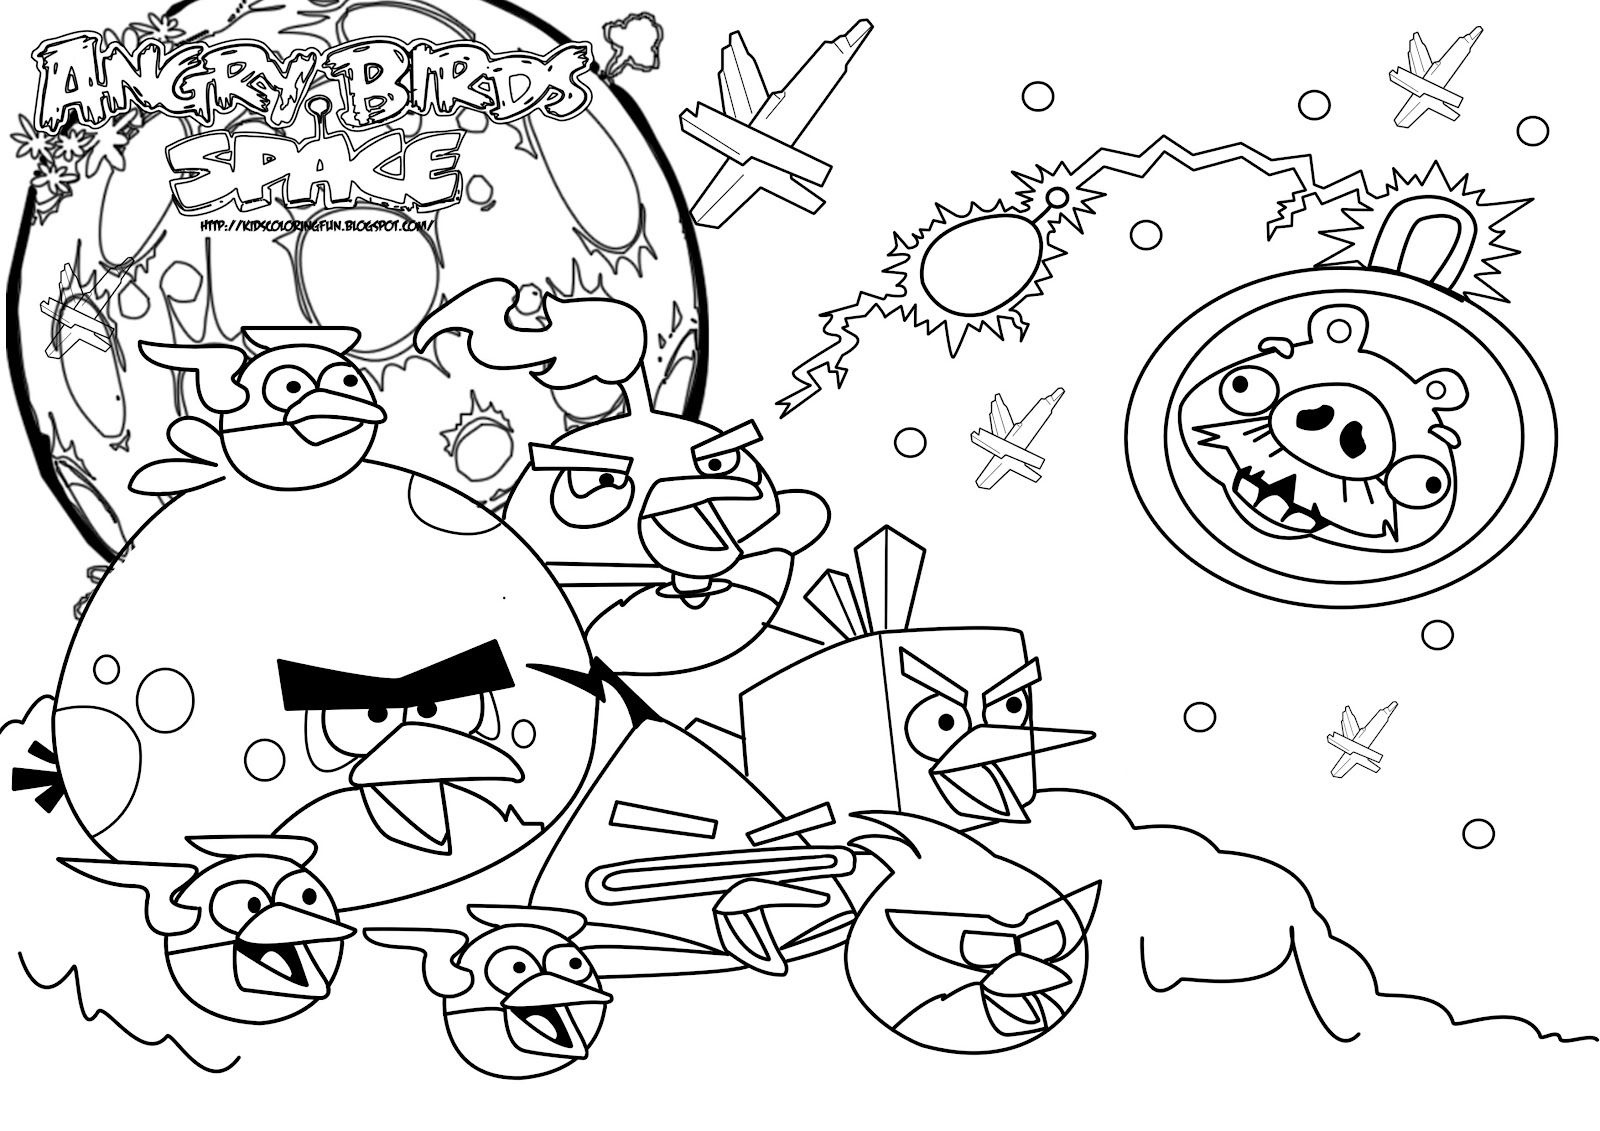 Free Angry Birds Space Coloring Pages | I Need This! | Bird Coloring - Free Printable Angry Birds Space Coloring Pages